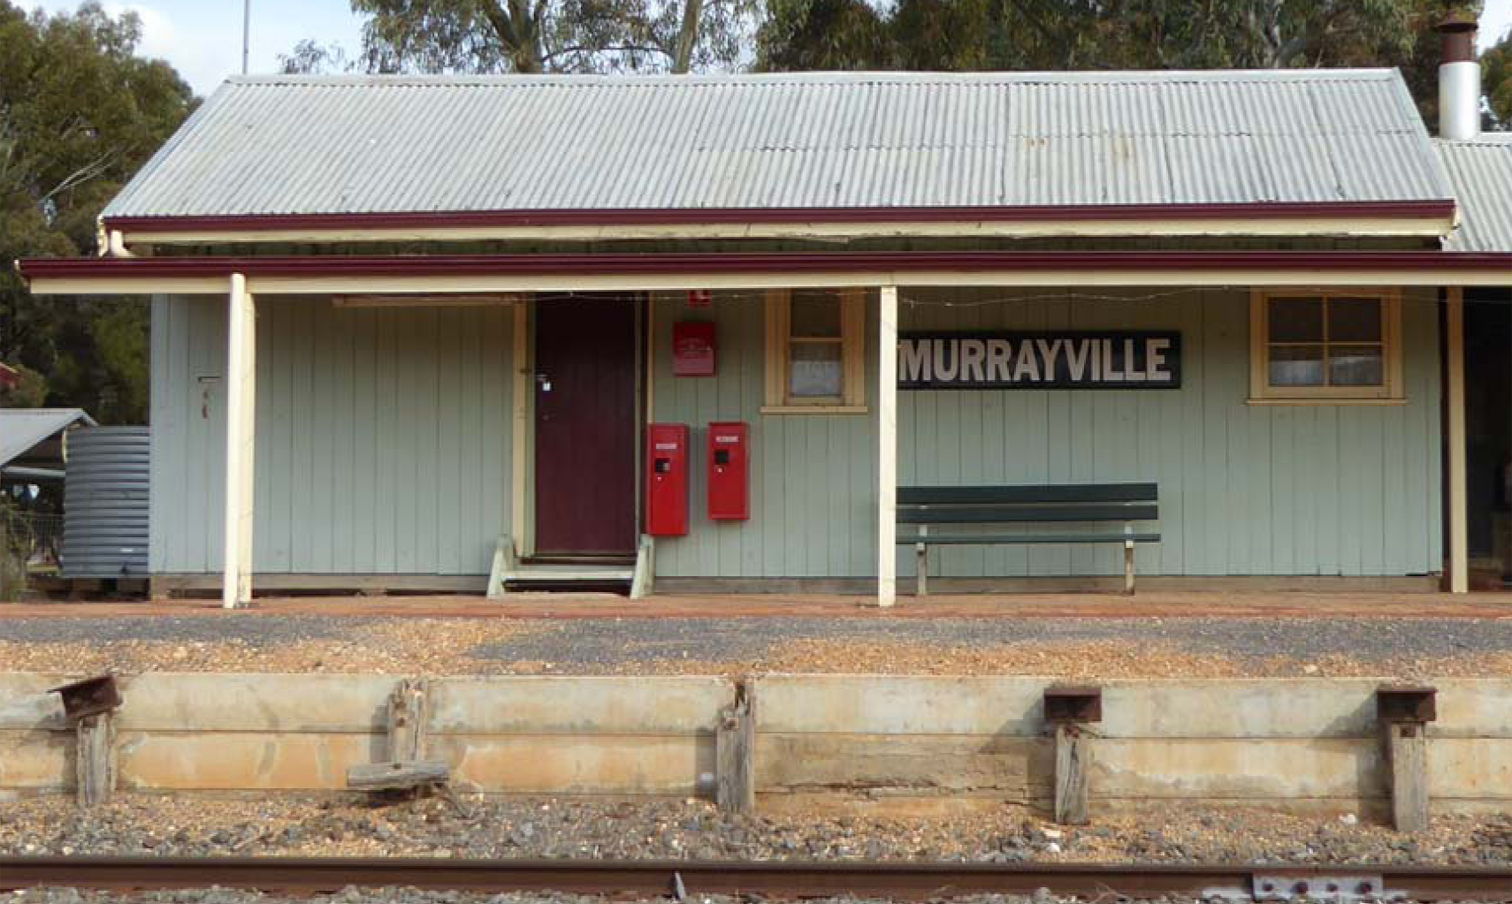 Murrayville Station building